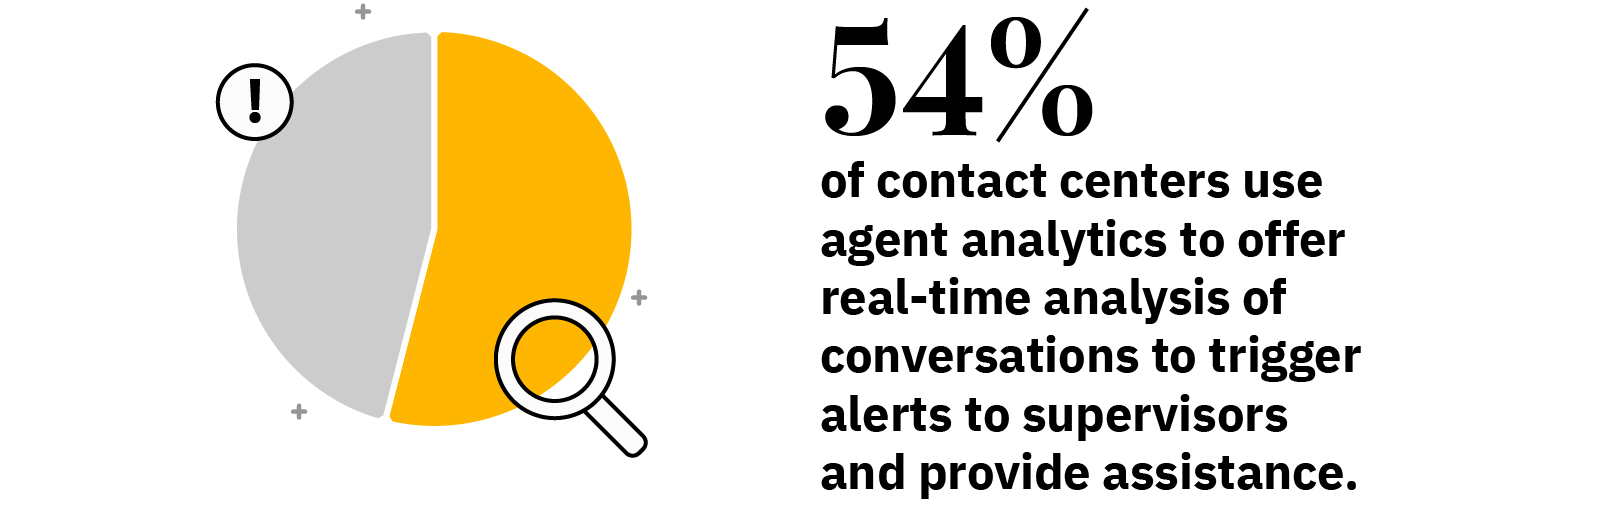 54% of contact centers use agent analytics to offer real-time analysis of conversations to trigger alerts to supervisors and provide assistance.